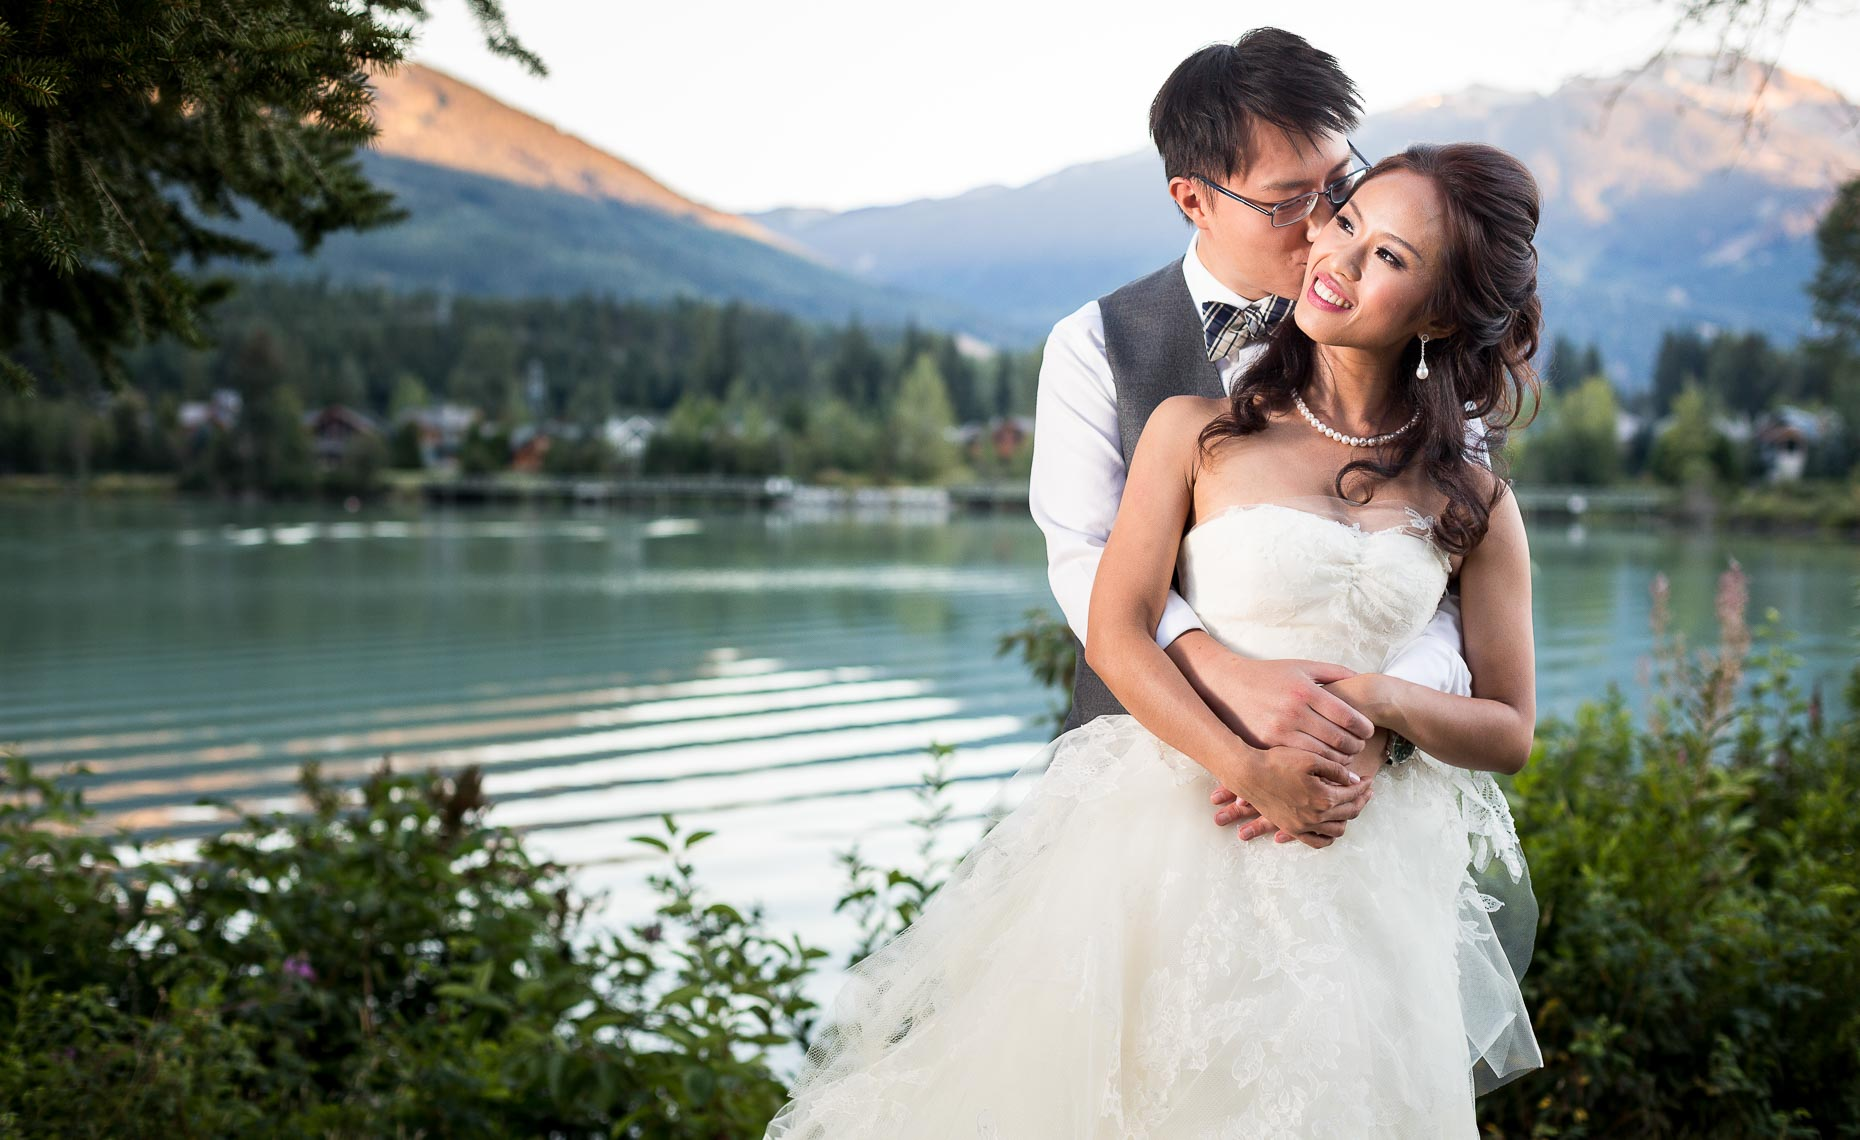 Whistler wedding couple in intimate moment portrait with lake and mountains